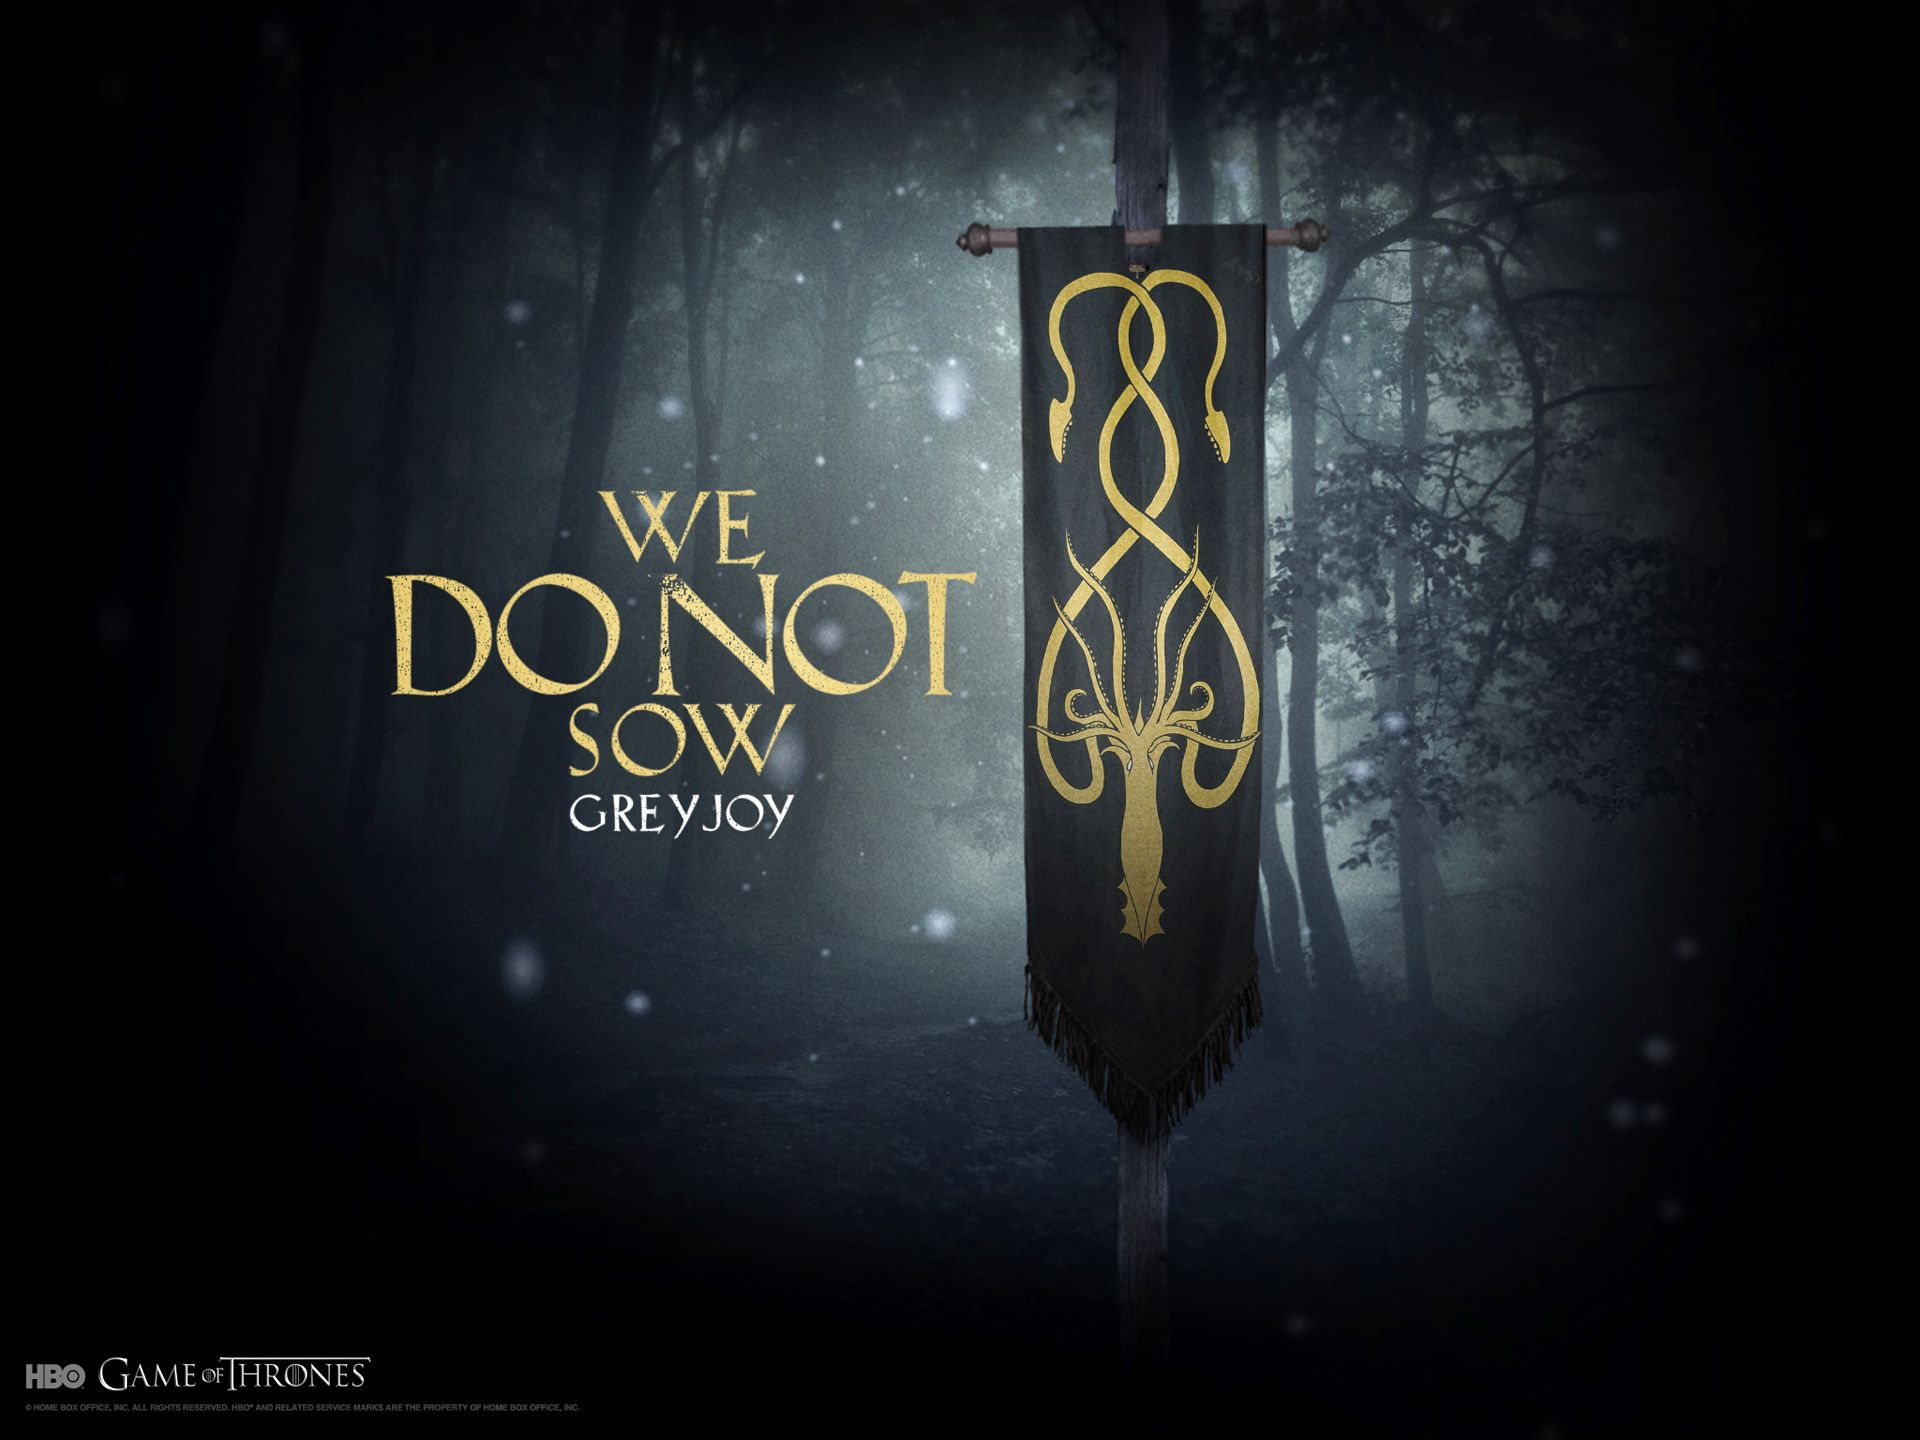 house greyjoy of pyke is one the great houses westeros it rules over